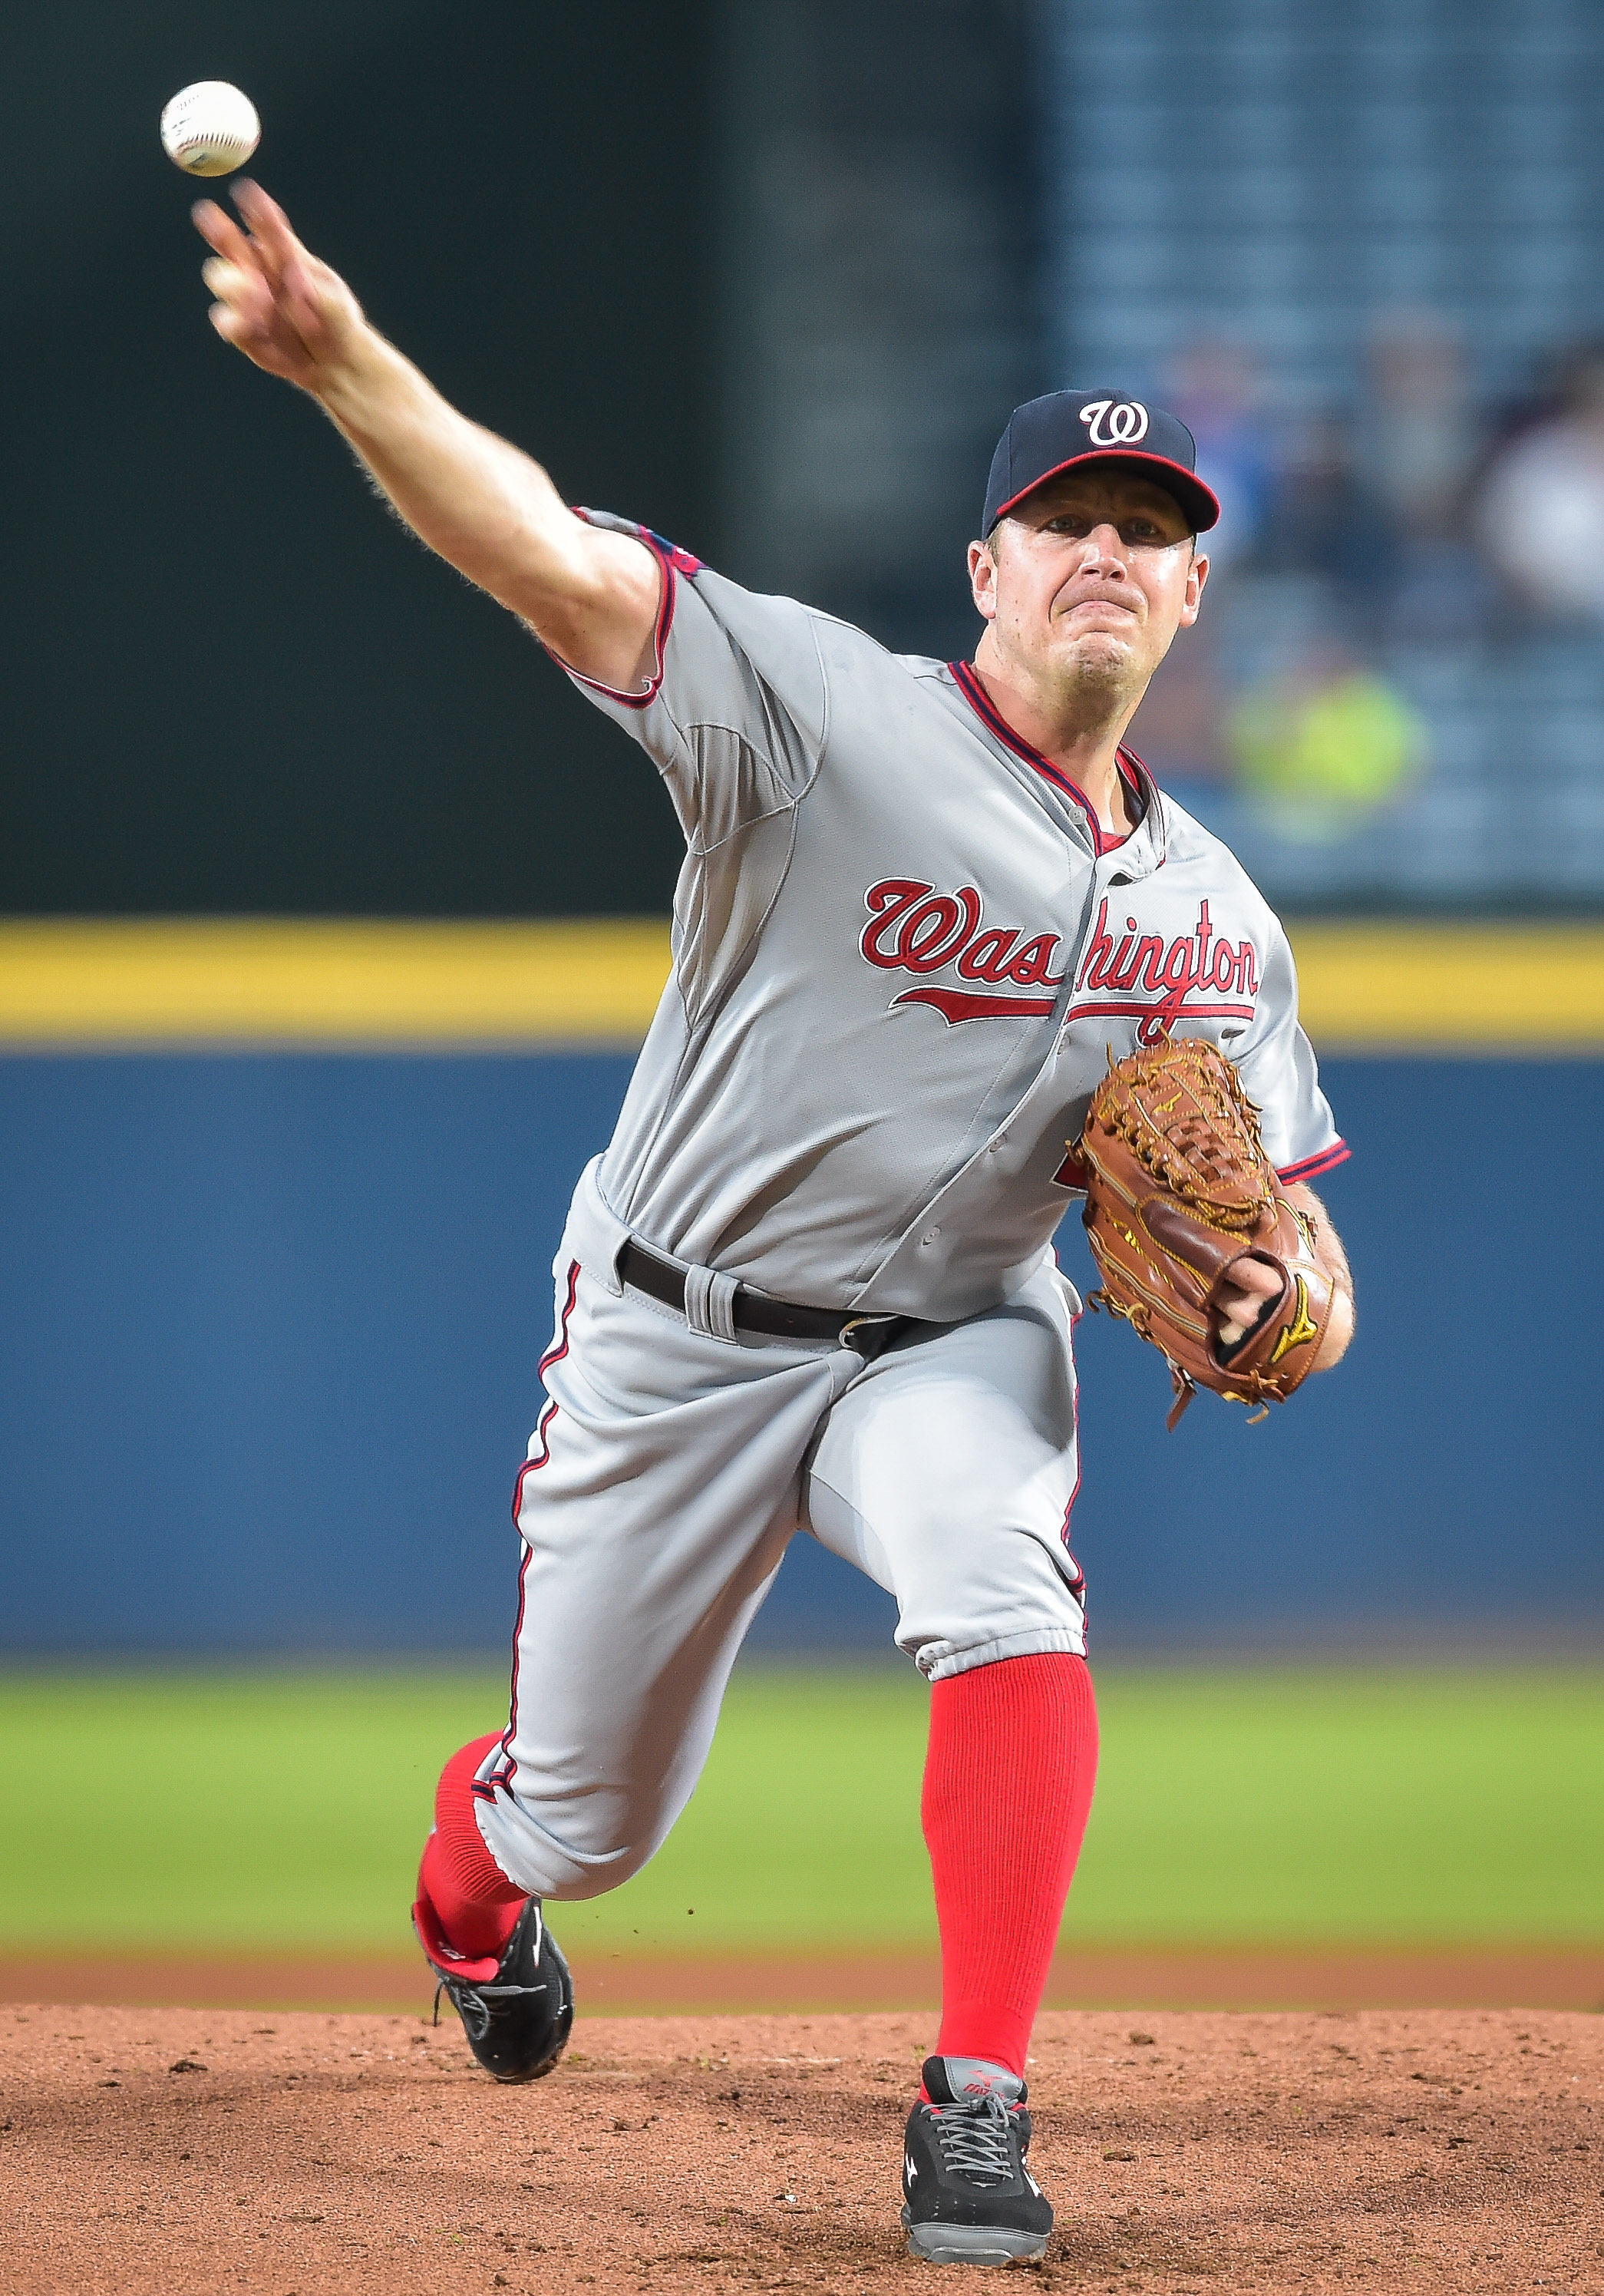 Washington Nationals starting pitcher Jordan Zimmermann works in the first inning of a baseball game against the Atlanta Braves, Wednesday, Sept. 30, 2015, in Atlanta. (AP Photo/Jon Barash)